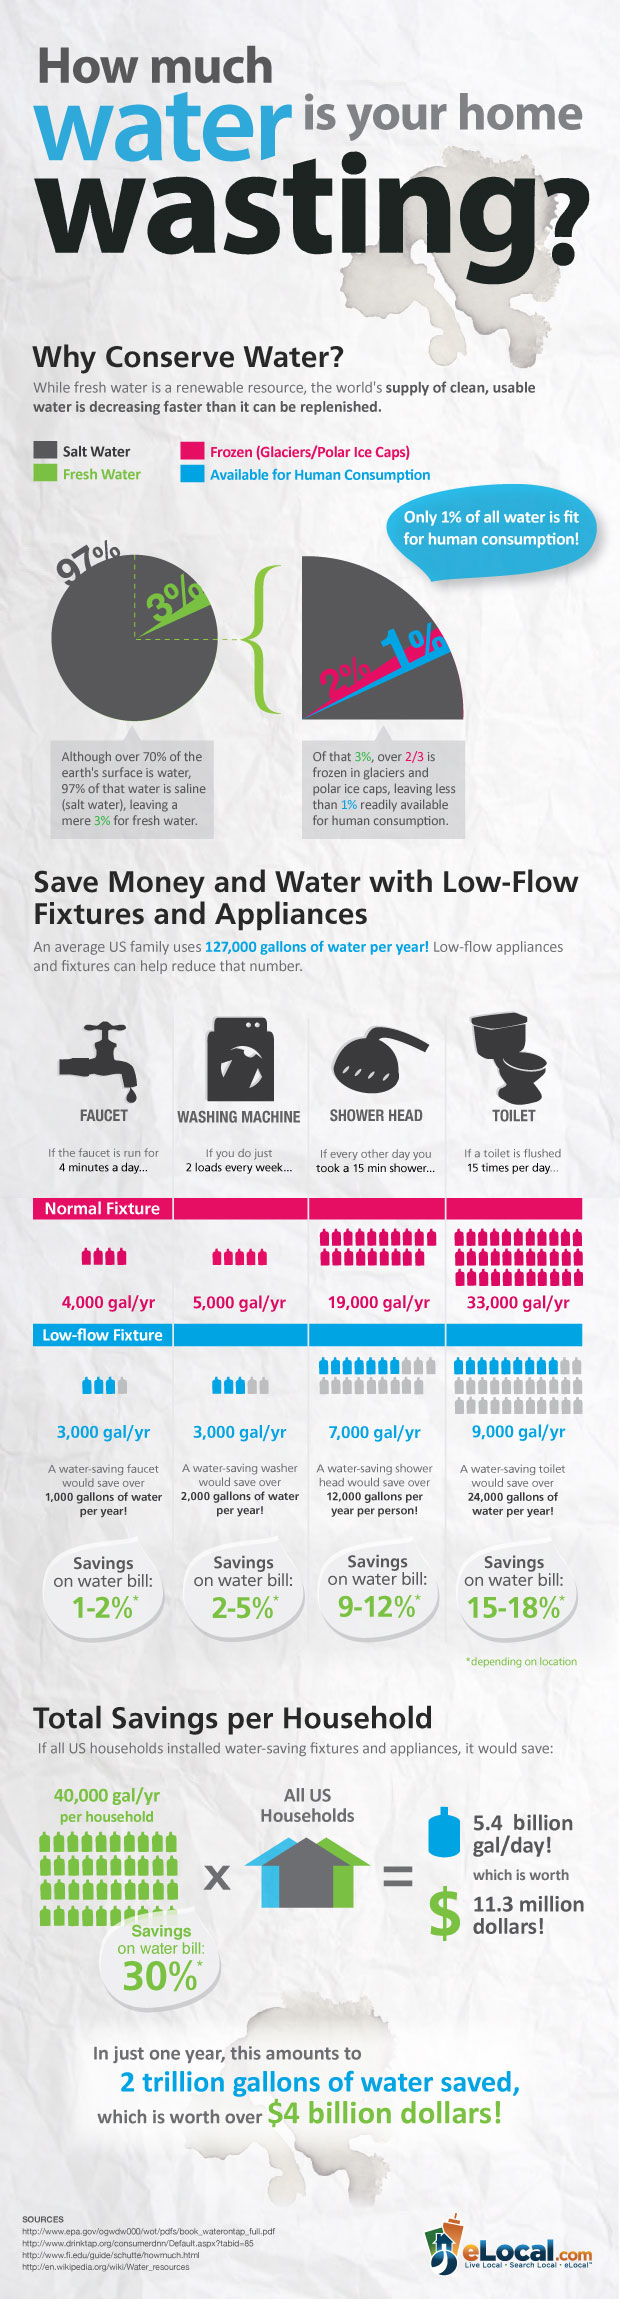 Water-Wasting-Home-infographic